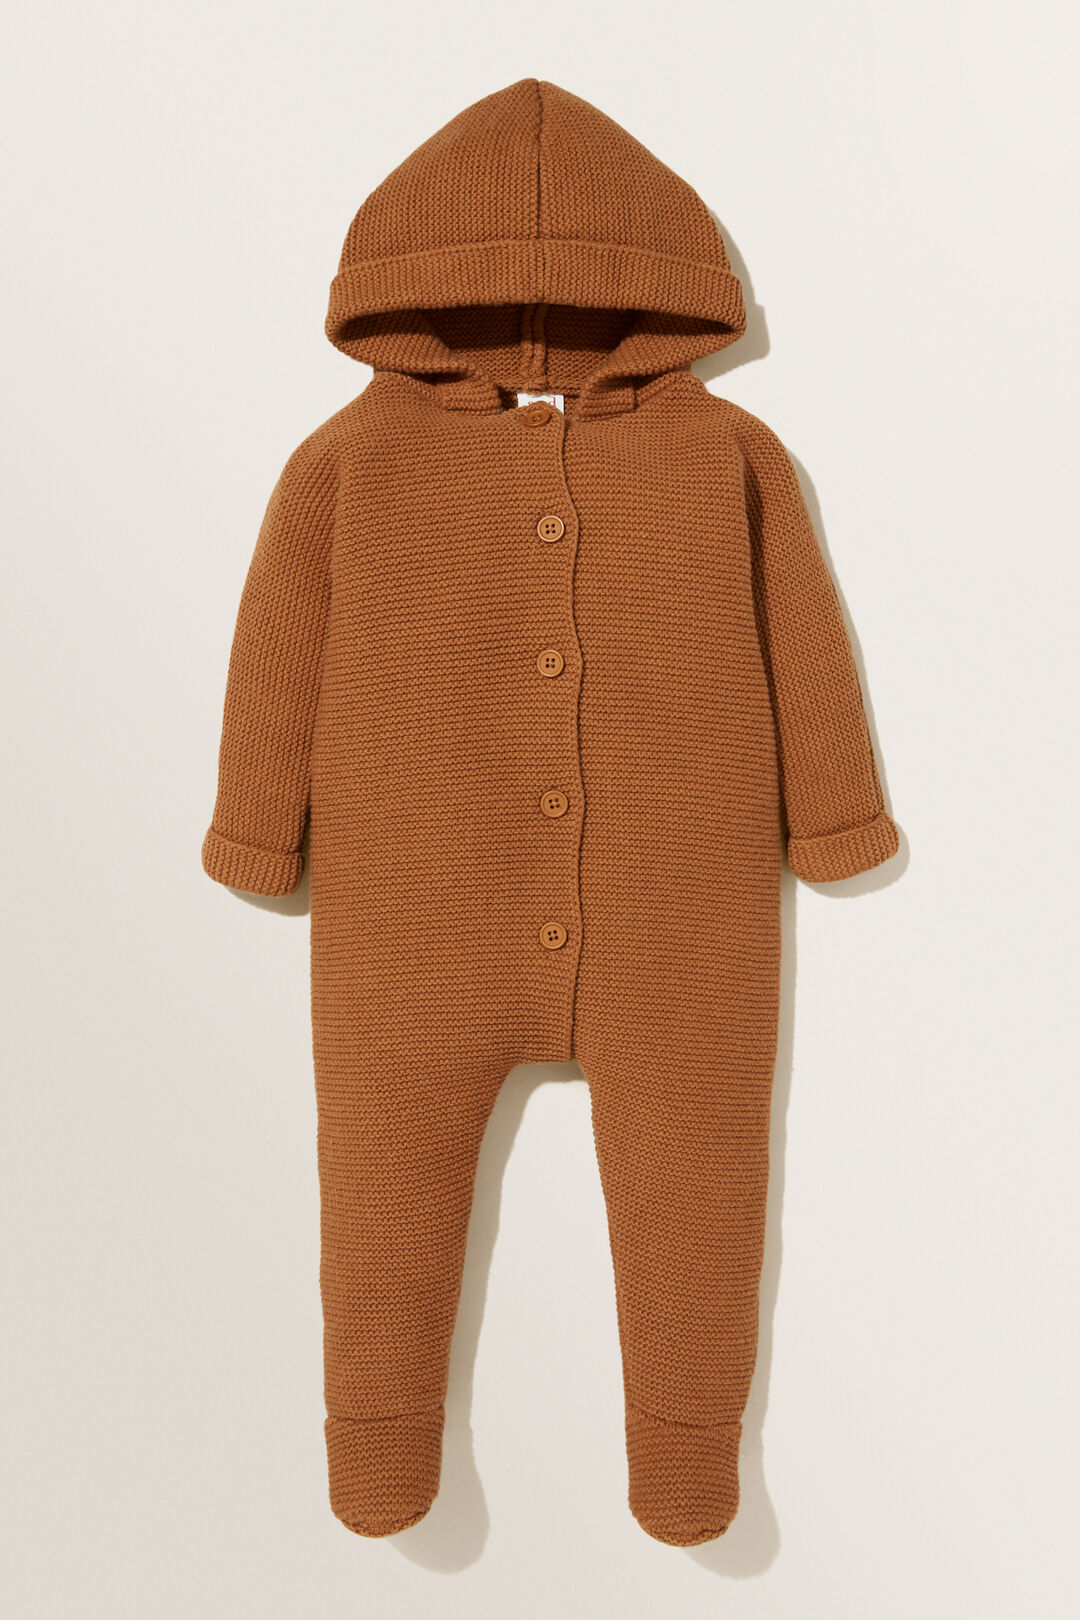 Knitted Hoodie Overall  CLOVE  hi-res